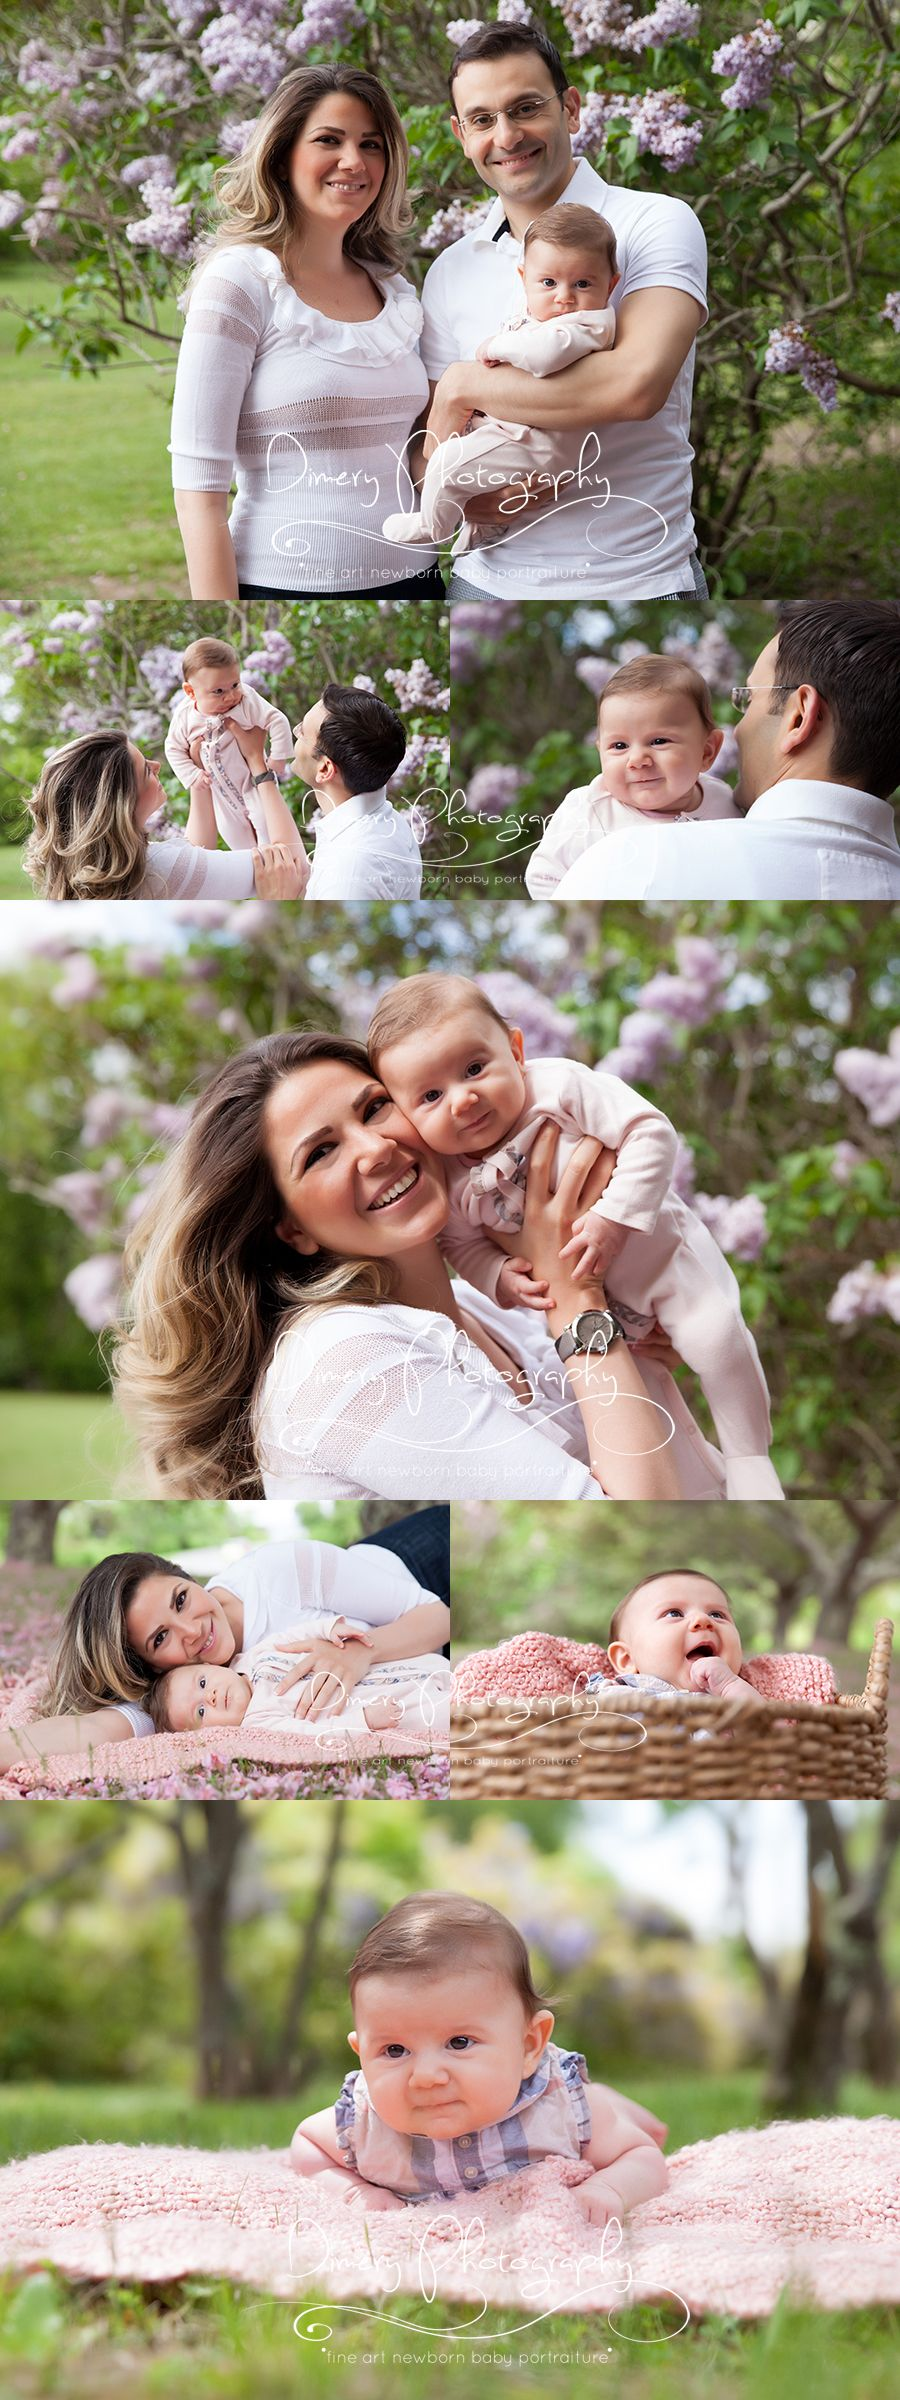 Outdoor Portrait Of A: Outdoor Family Portraits, Family Pictures, Infant With Mom